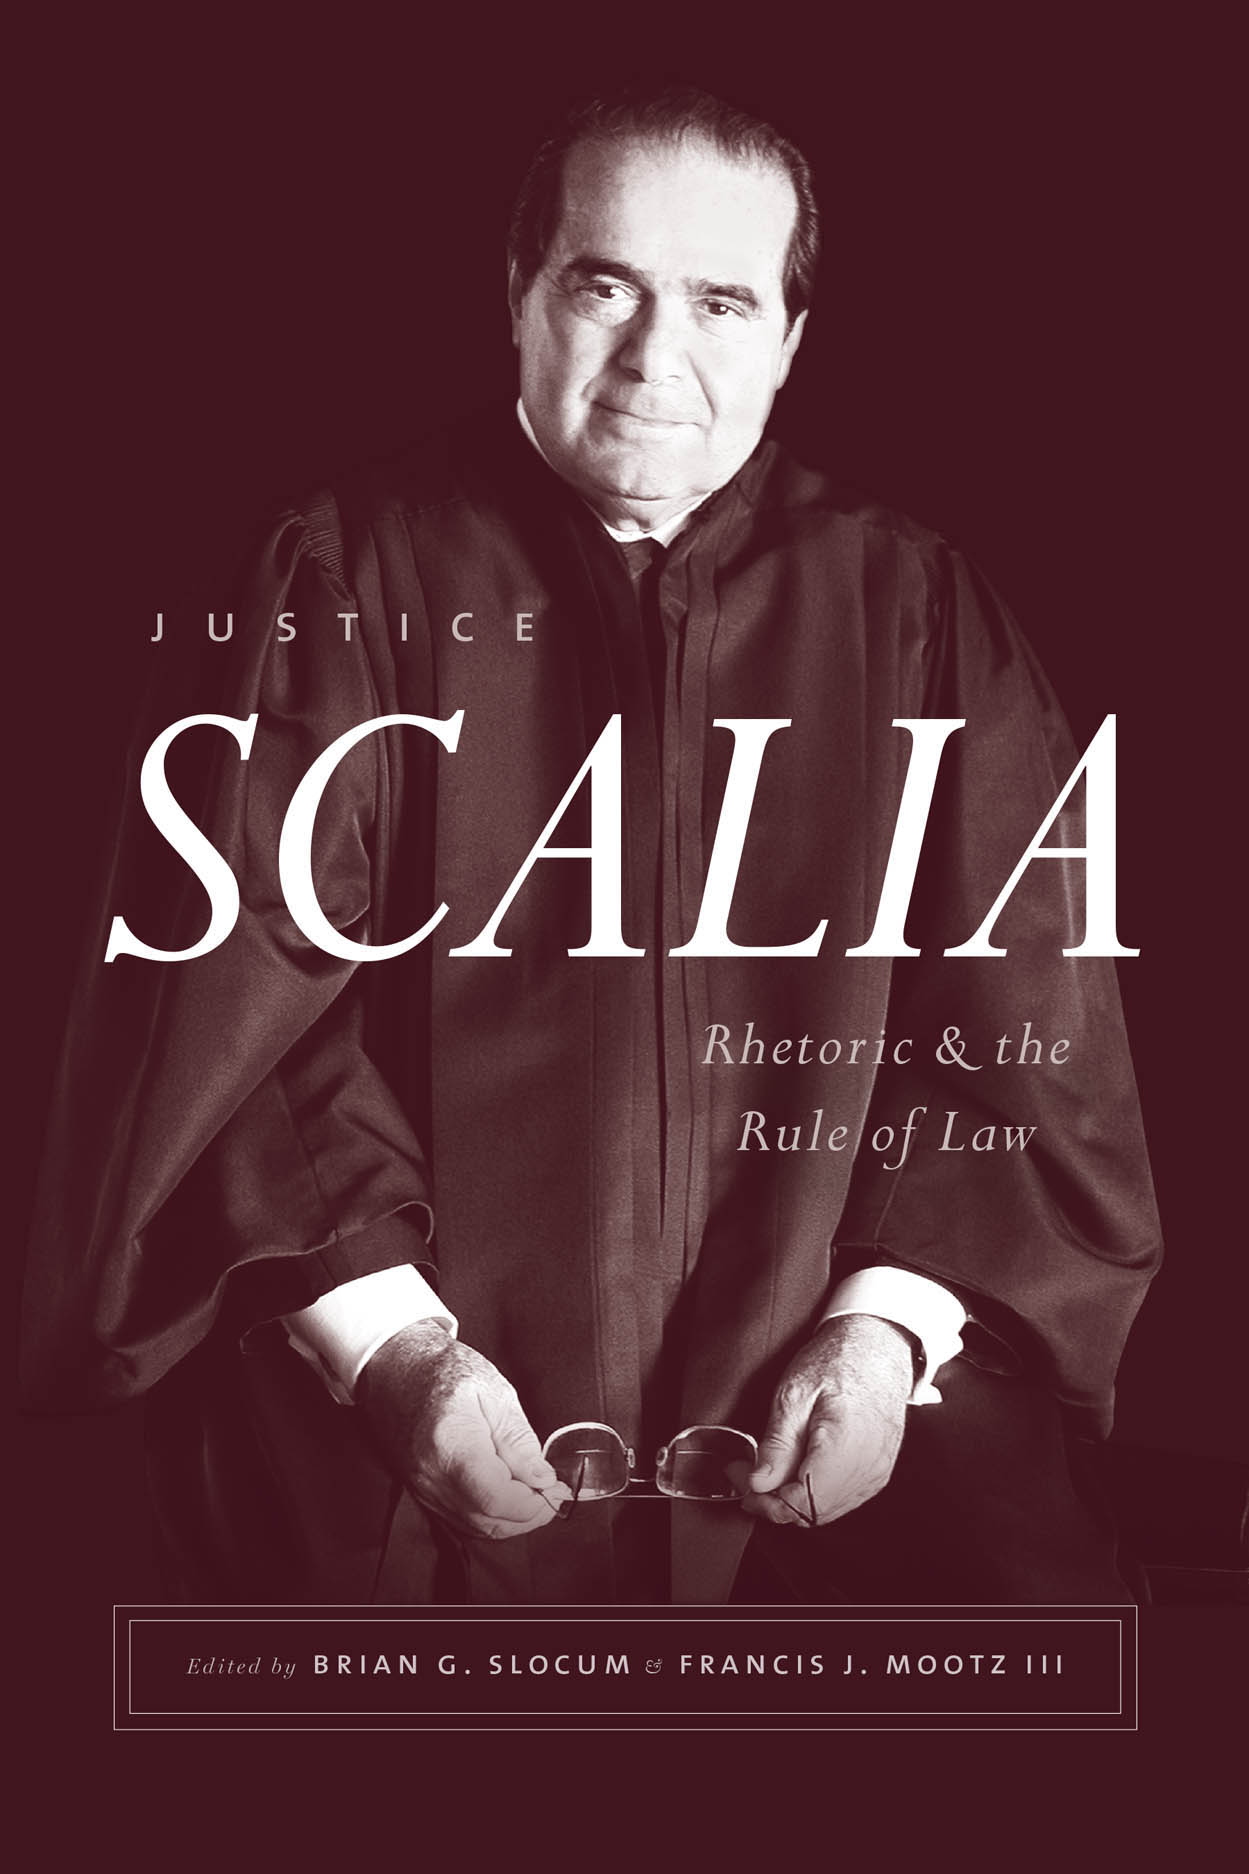 Justice Scalia: Rhetoric and the Rule of Law